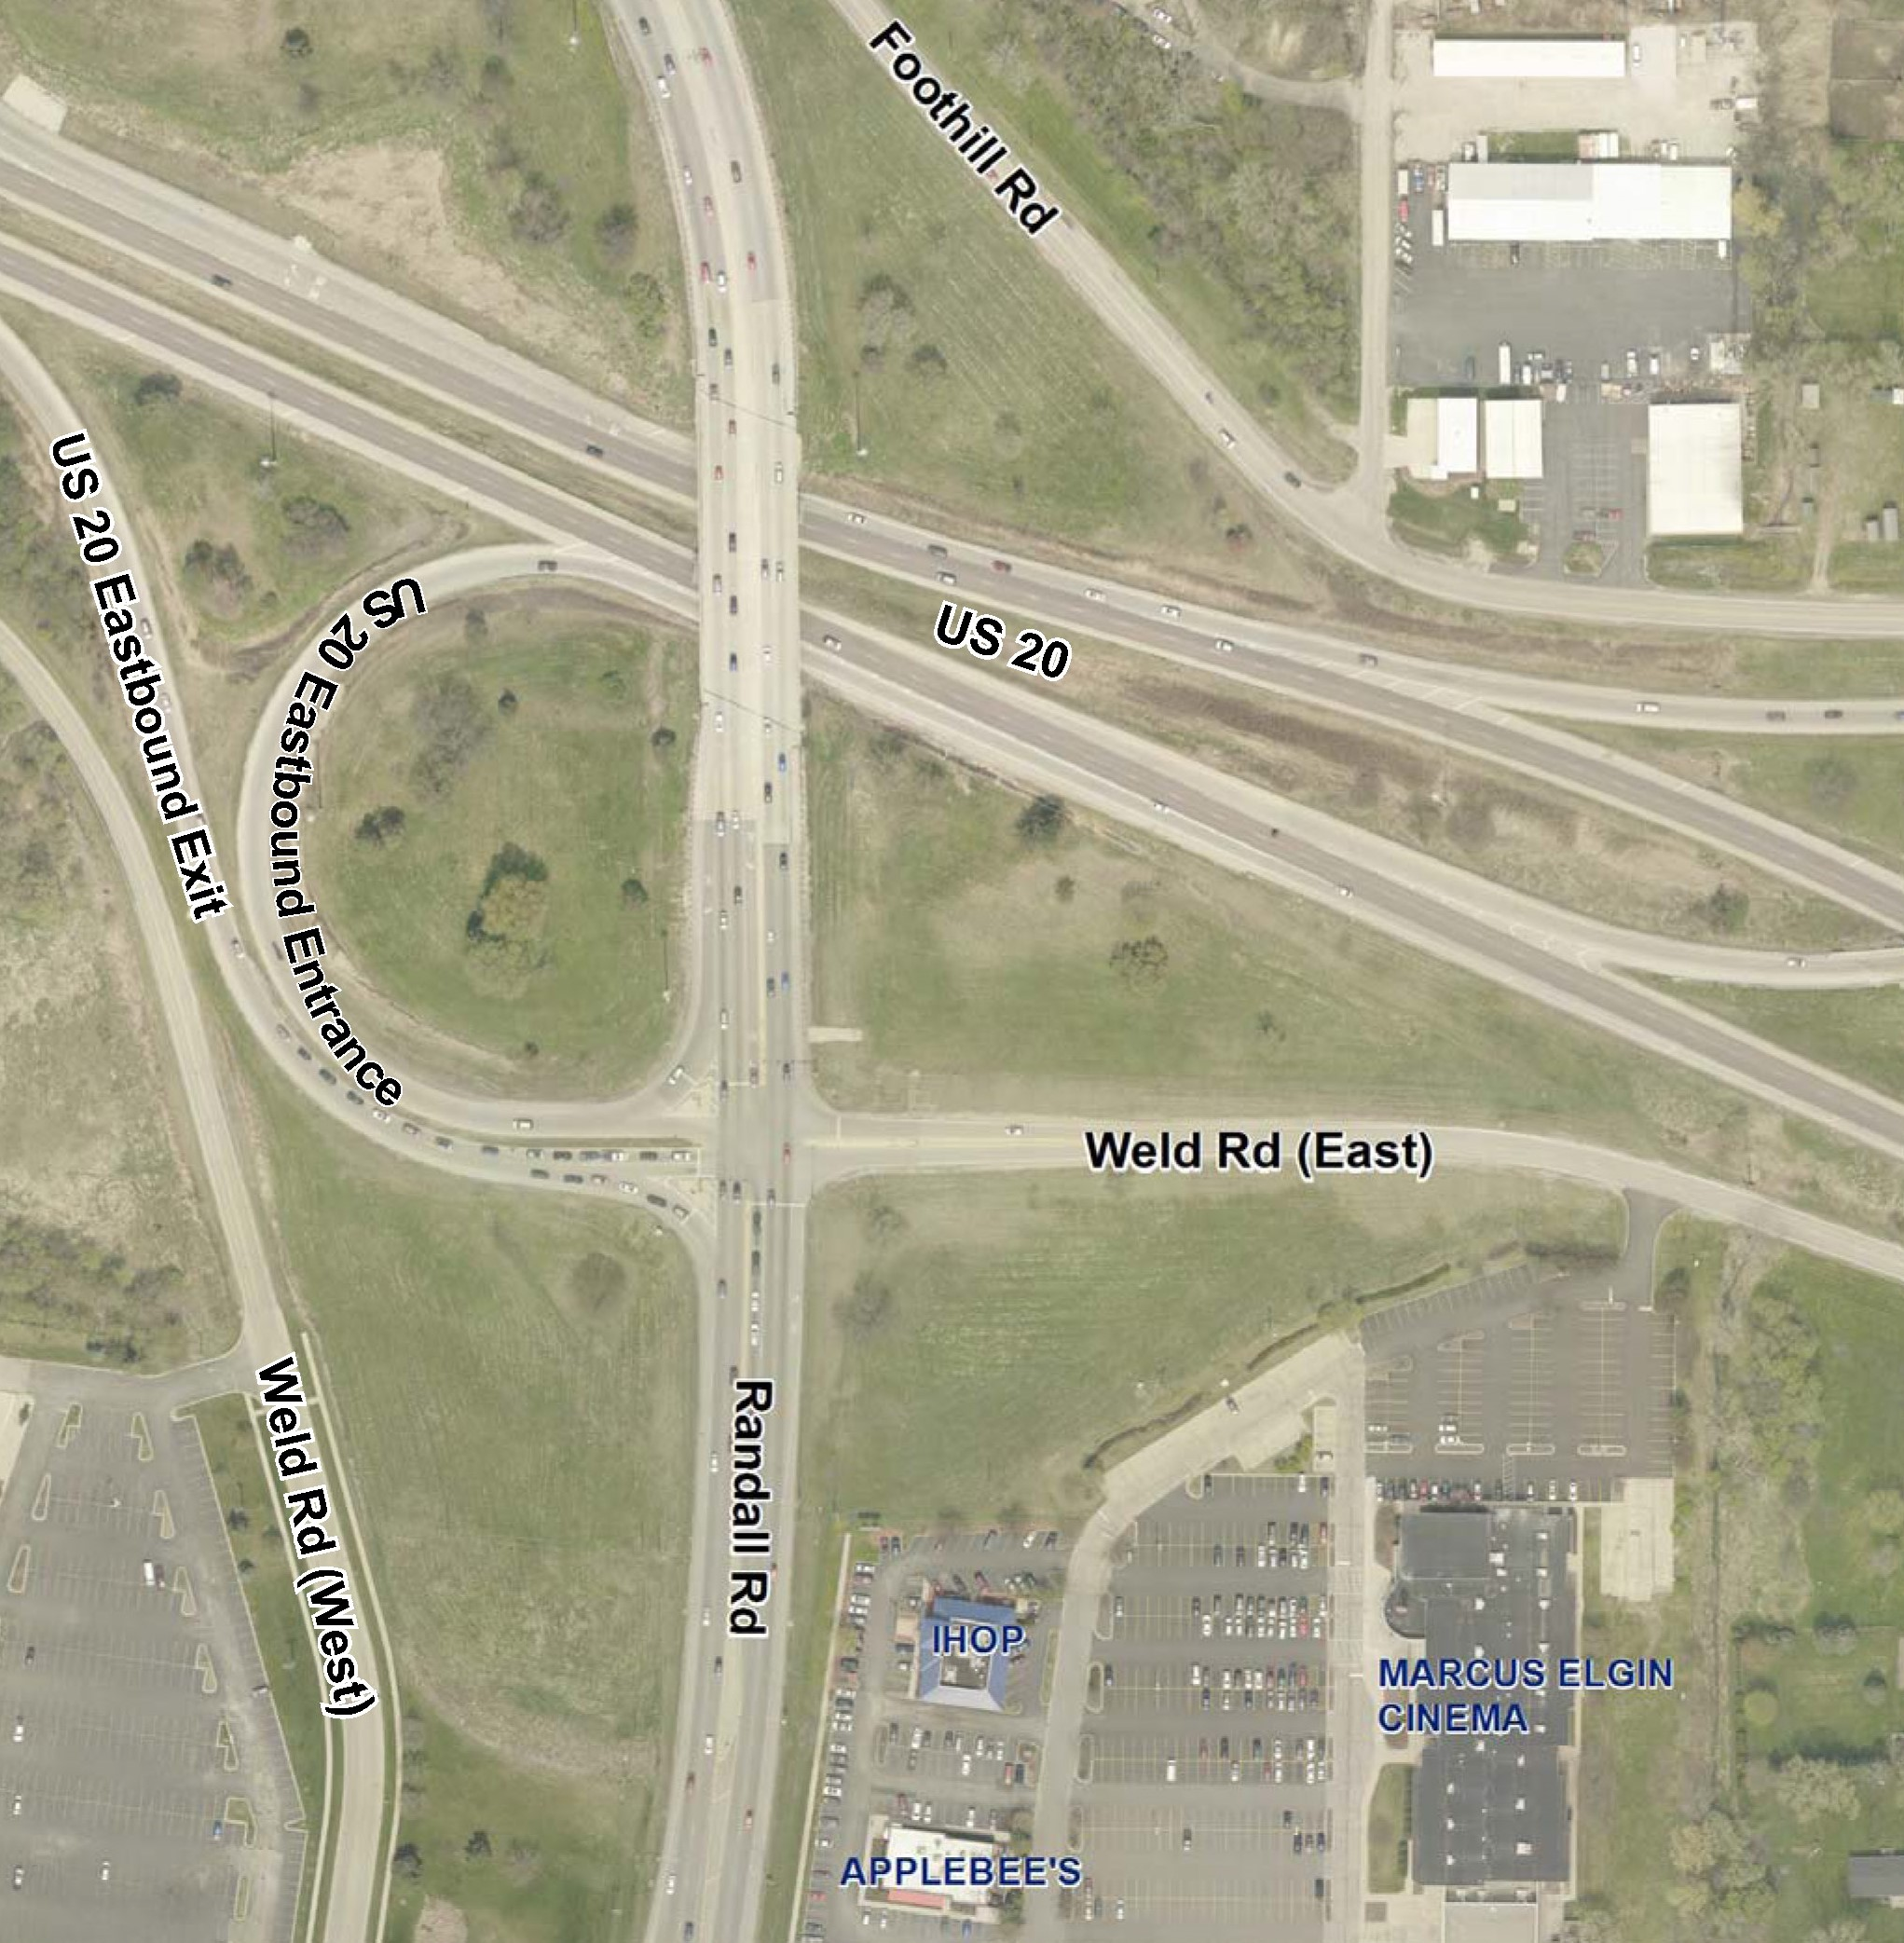 KDOT: Construction Project - Randall Weld on mndot road construction map, indot road construction map, kansas city road construction map, wisdot road construction map, modot road map, penndot road construction map, odot road construction map,